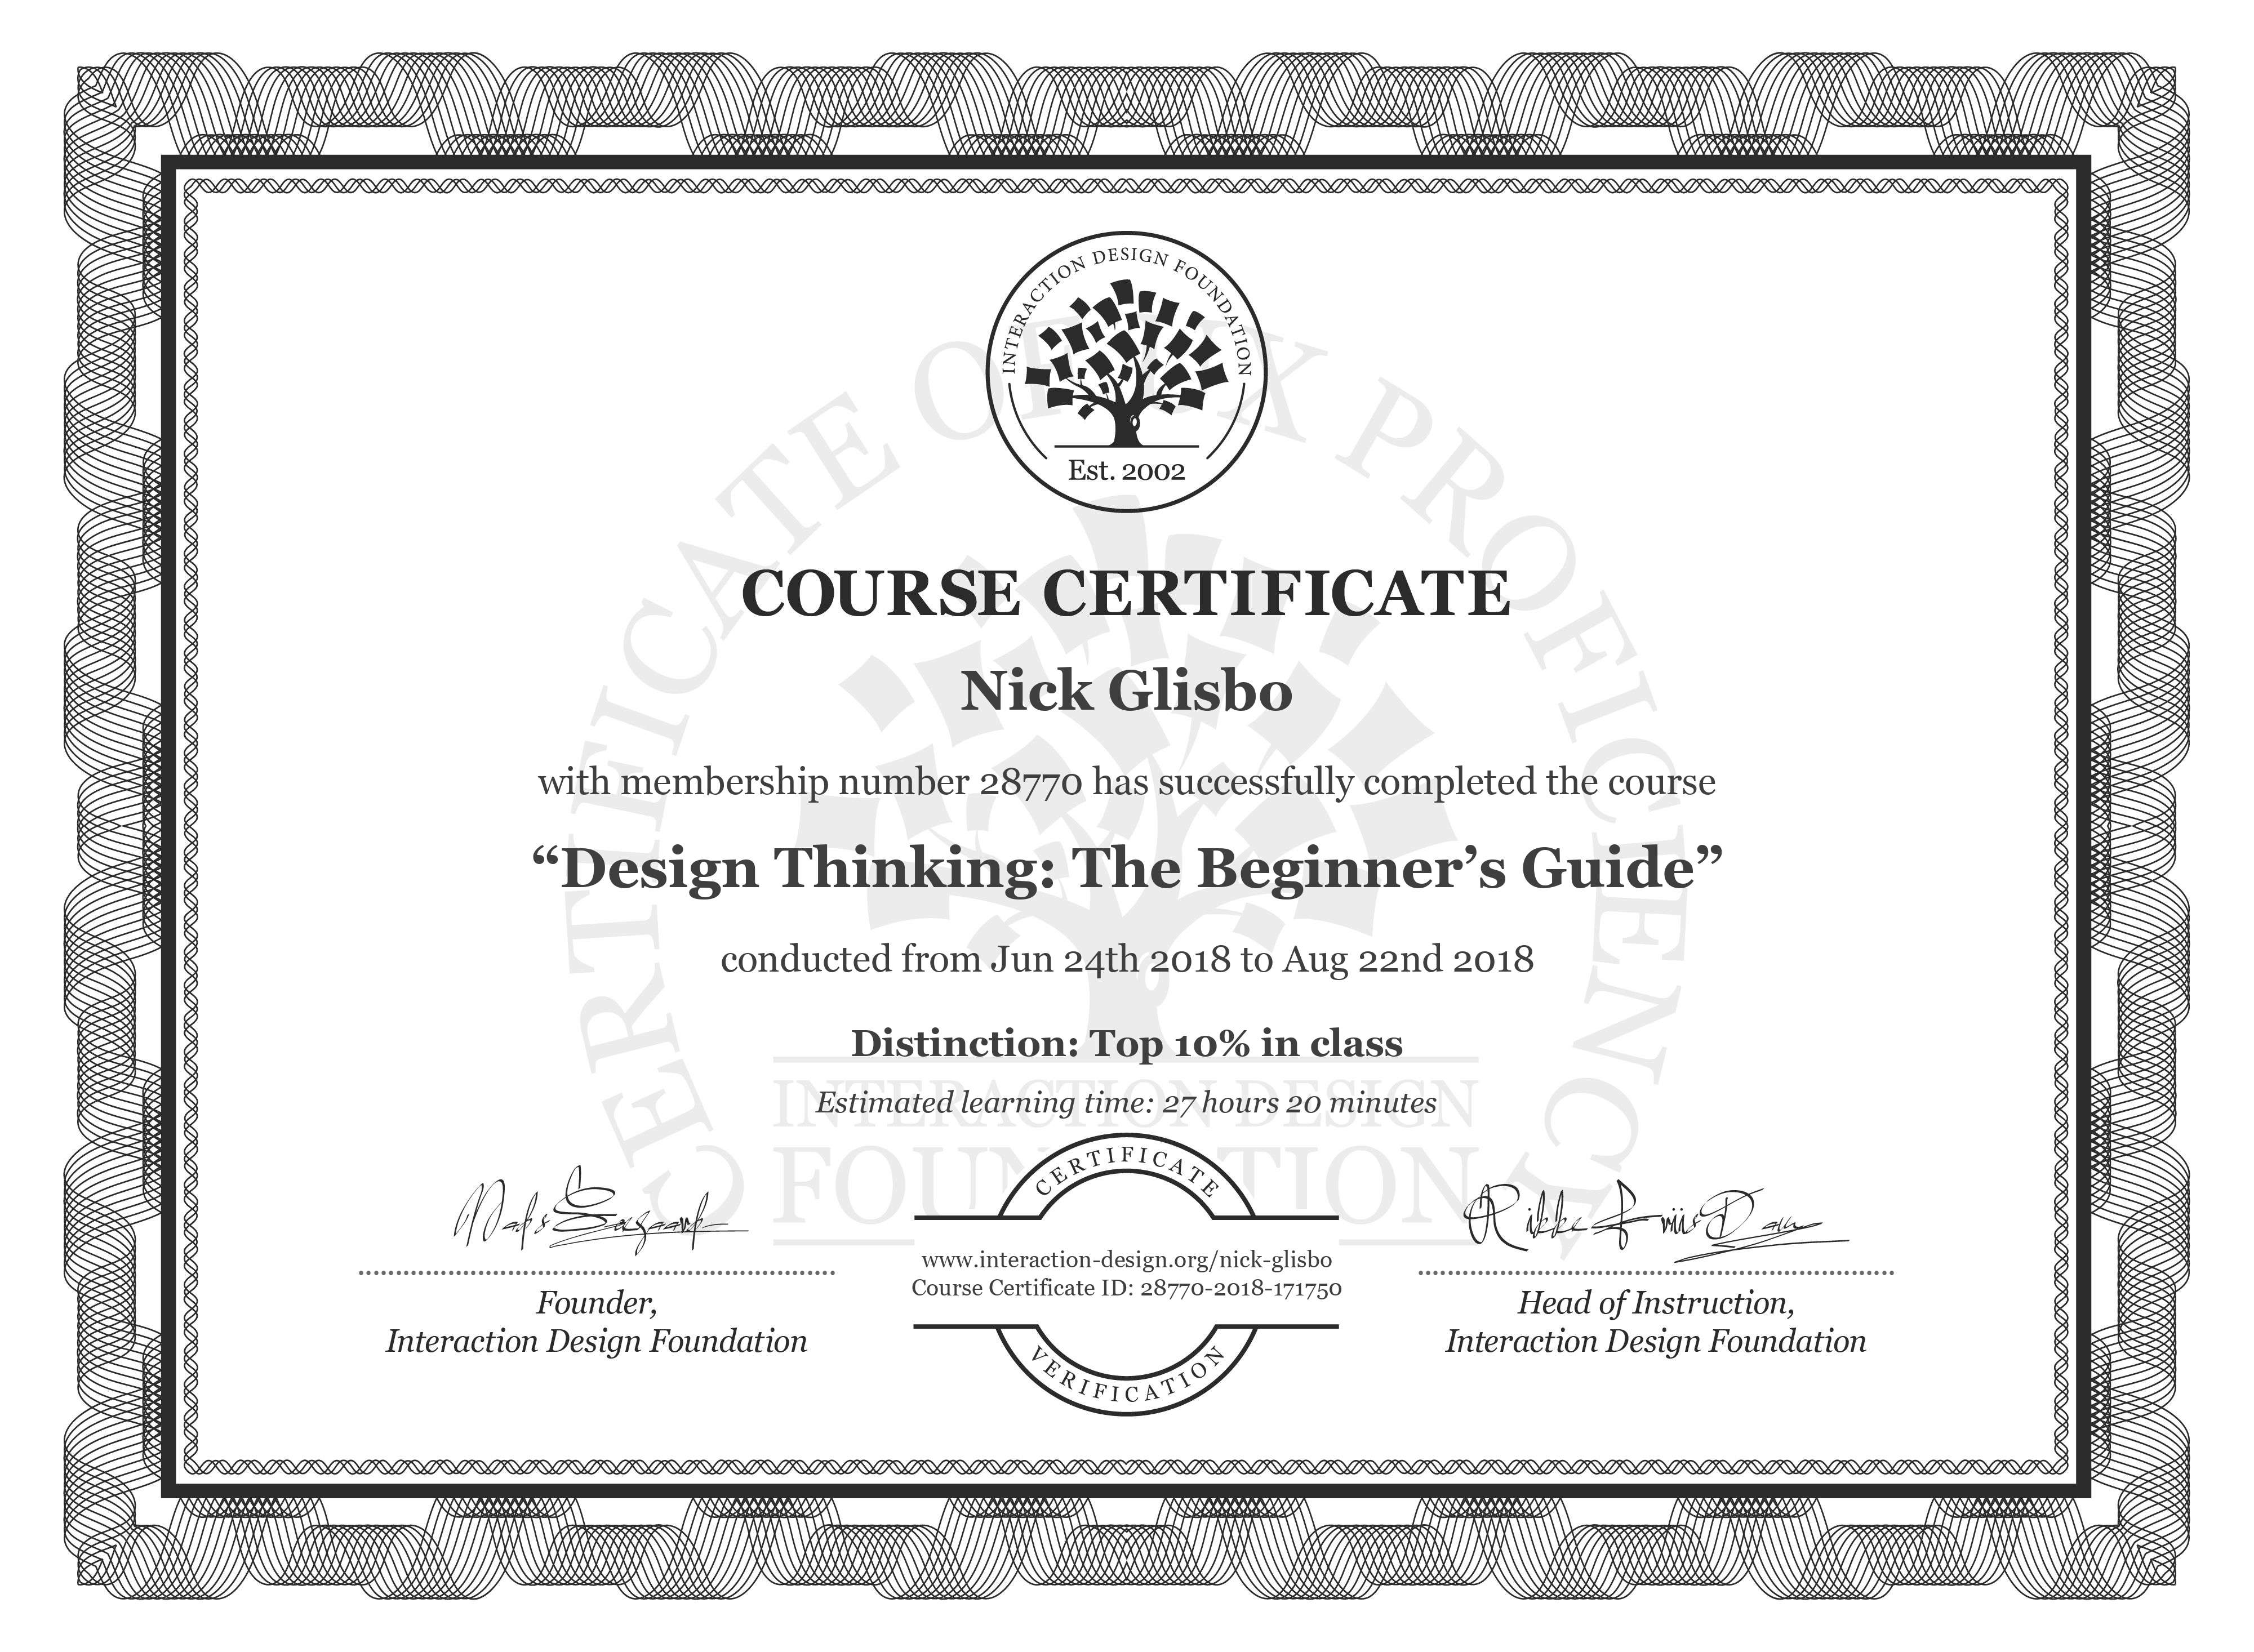 Nick Glisbo: Course Certificate - Design Thinking: The Beginner's Guide